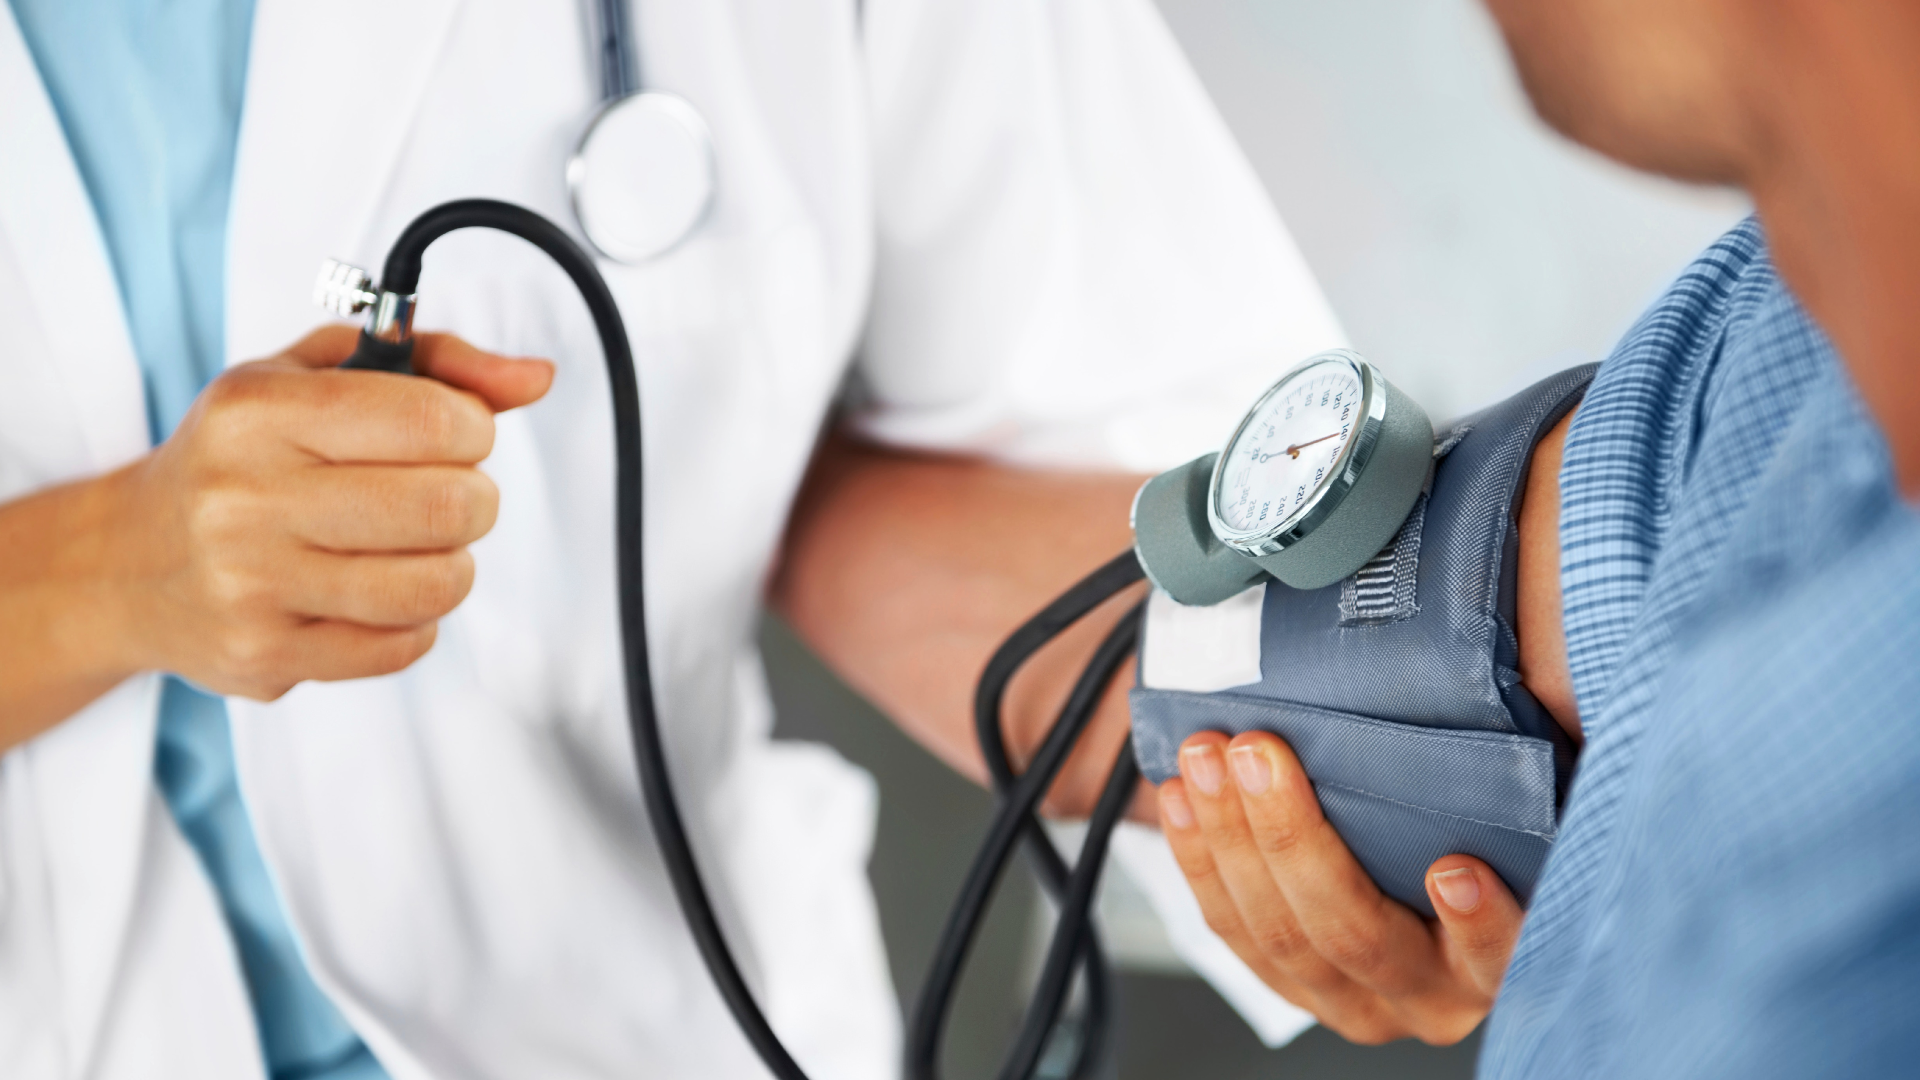 Blood pressure of 130 is the new 'high,' according to first update of guidelines in 14 years